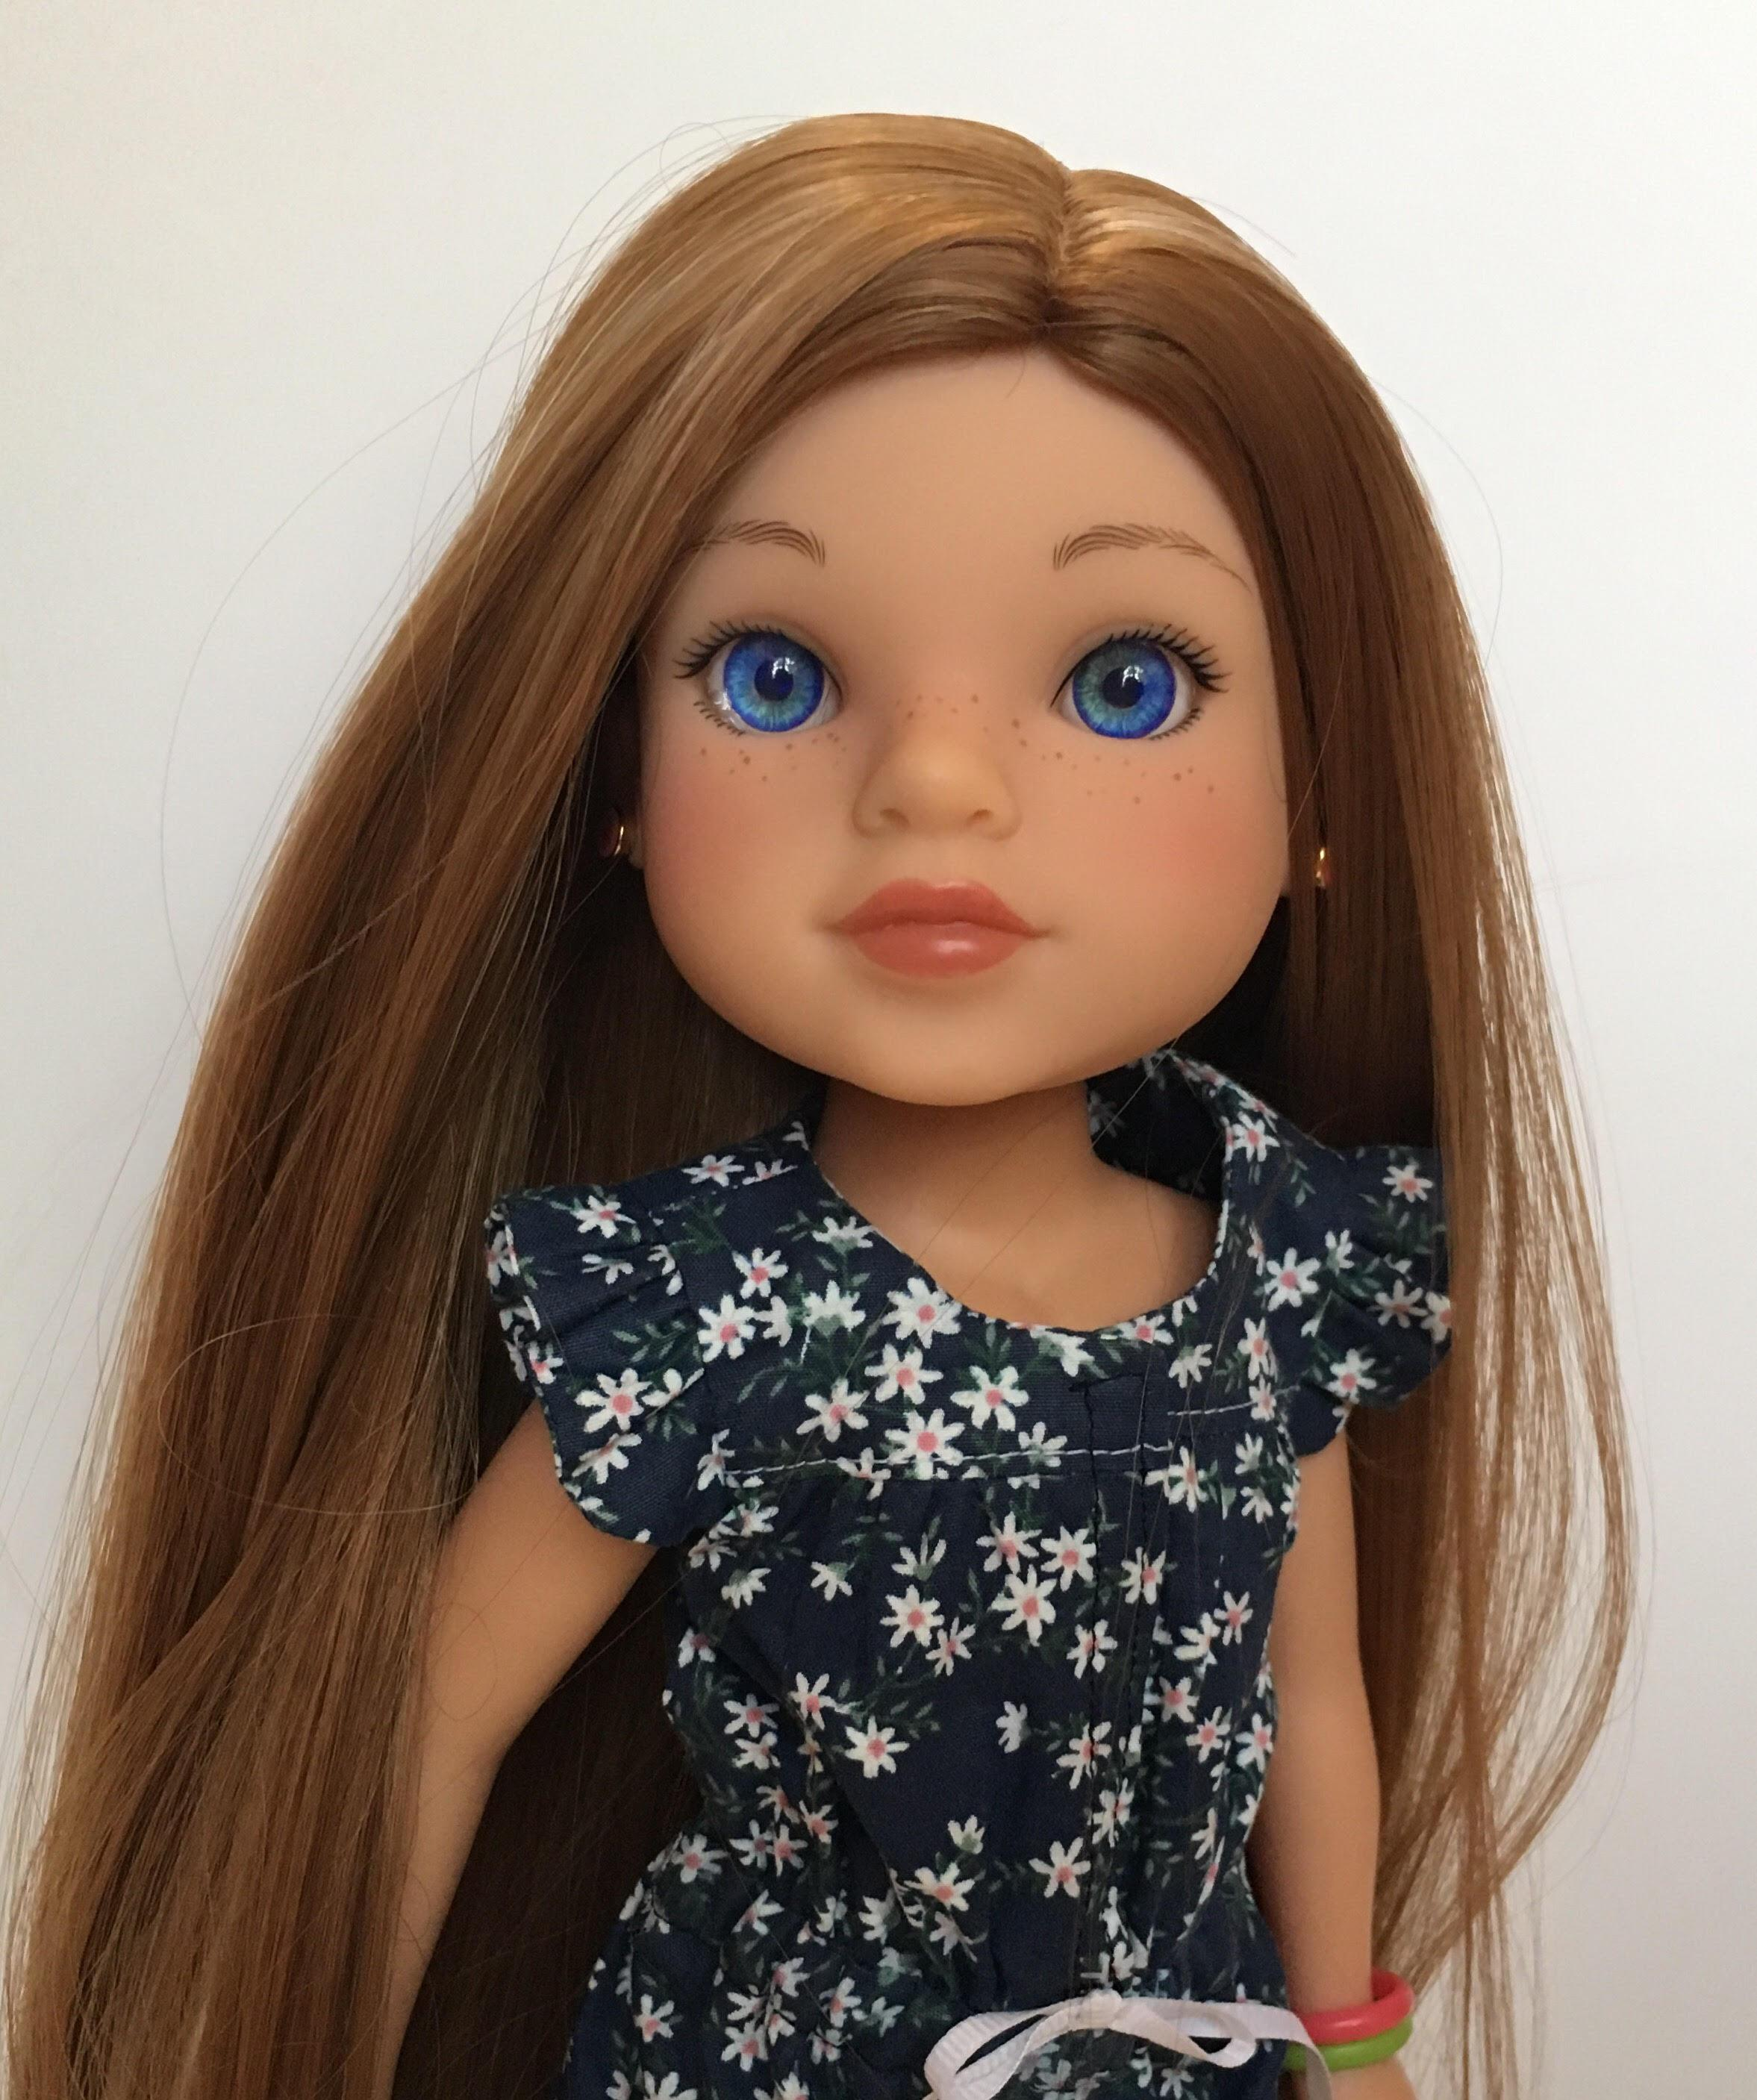 "ZaZou Luxury Petite Wig in Caramel Twirl for 14"" dolls such as Wellie Wishers and H4H"